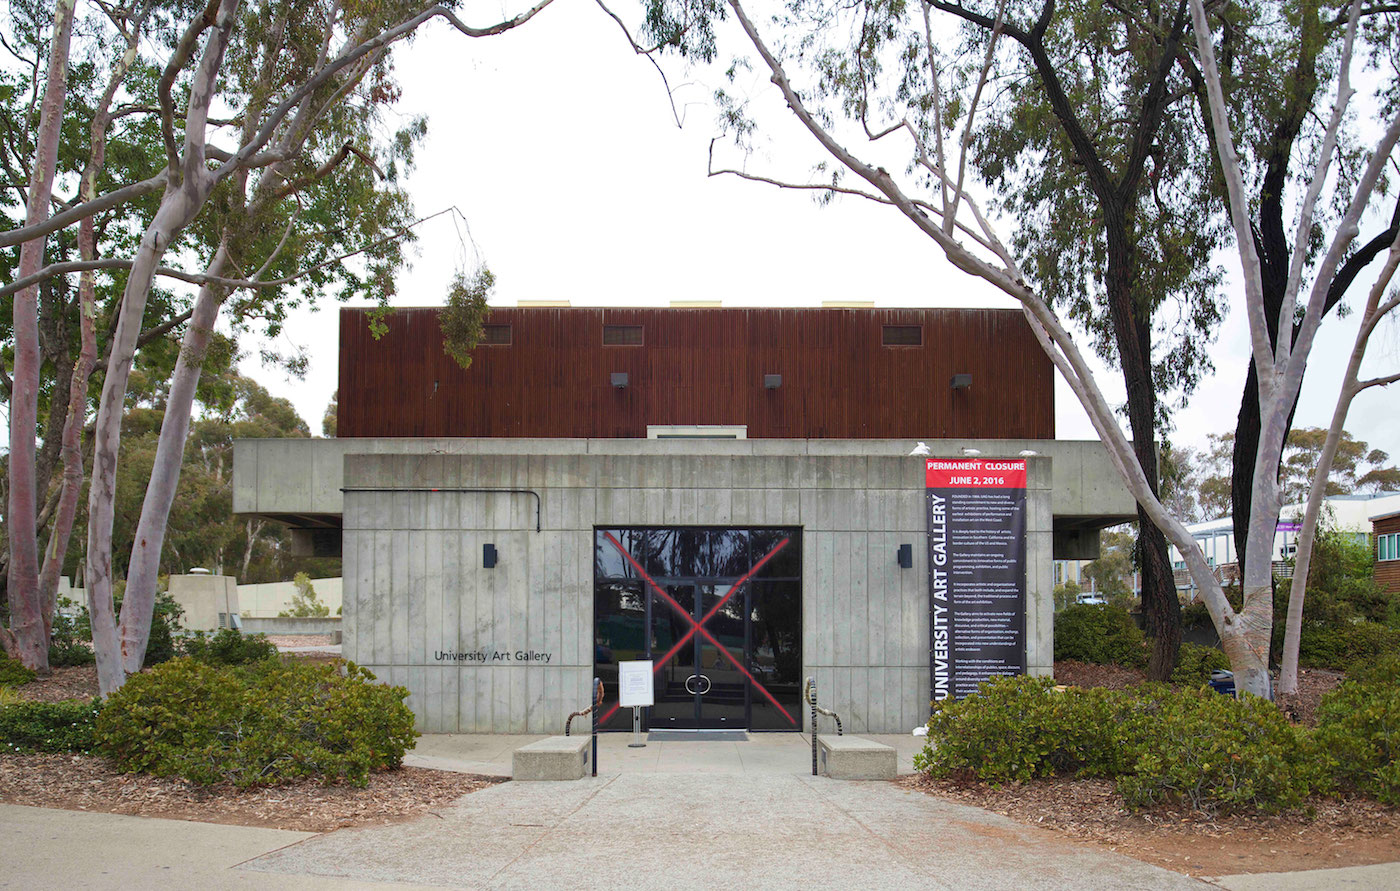 The exterior of the University Art Gallery at the University of California, San Diego, following an intervention by Collective Magpie (photo courtesy the artists)